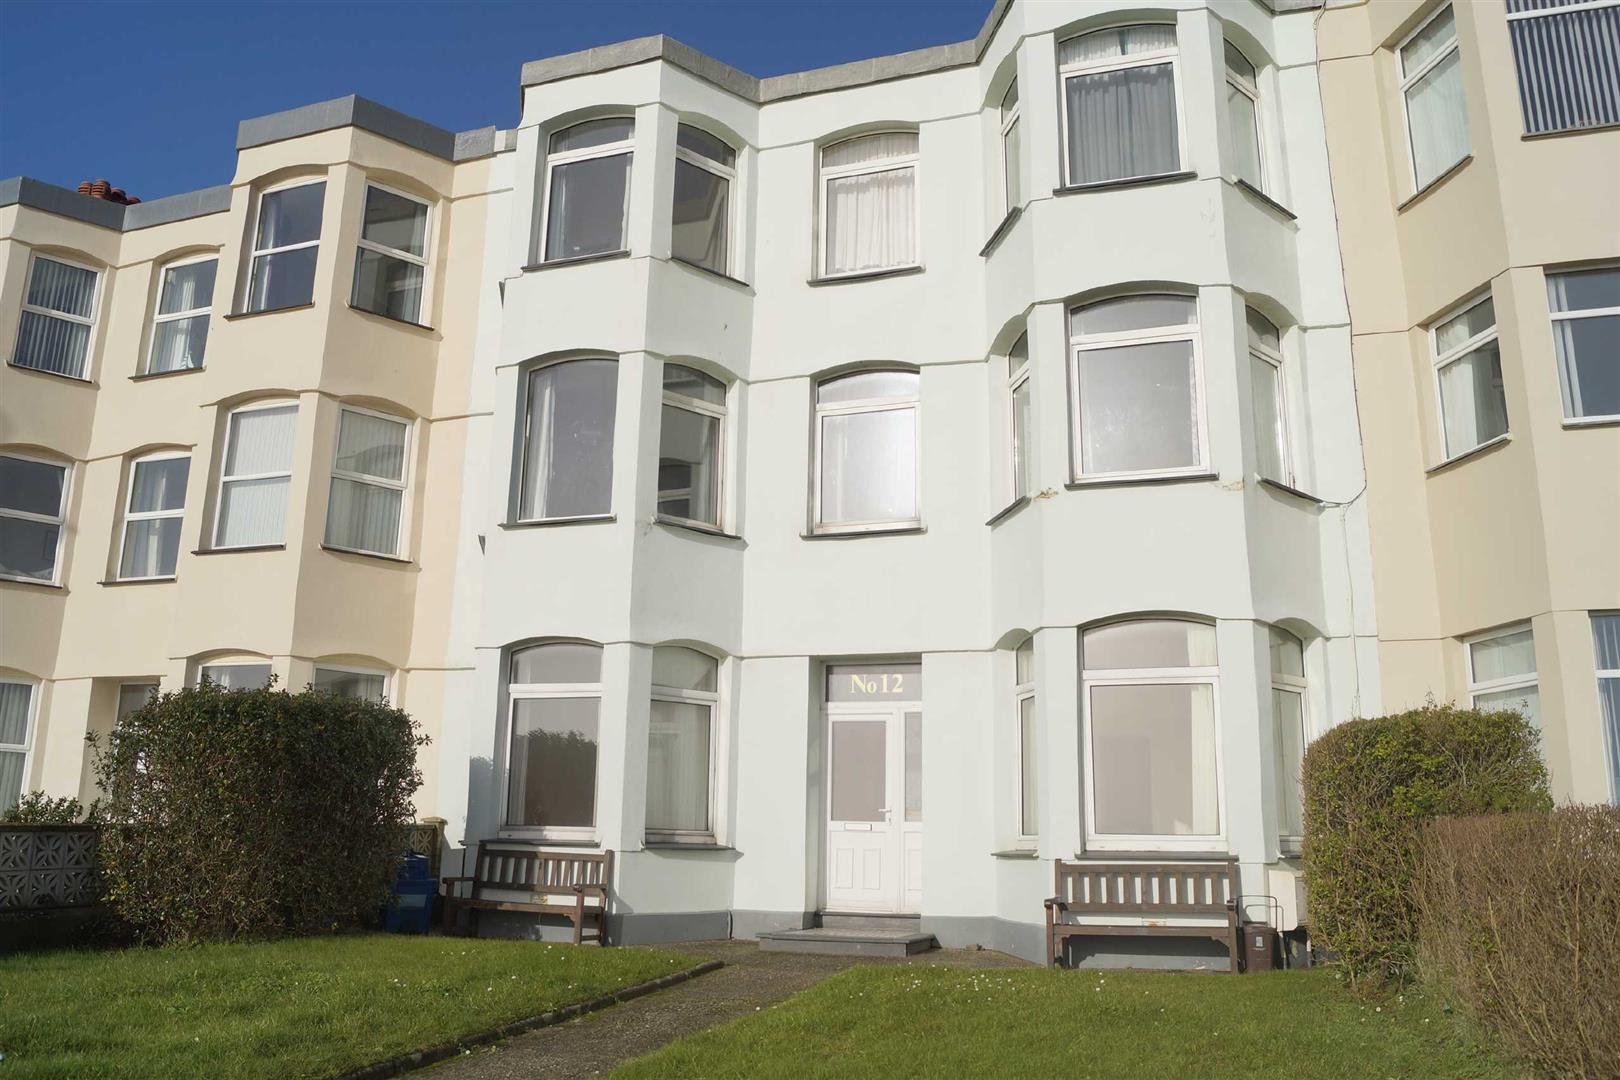 West End Parade, Pwllheli - £121,000